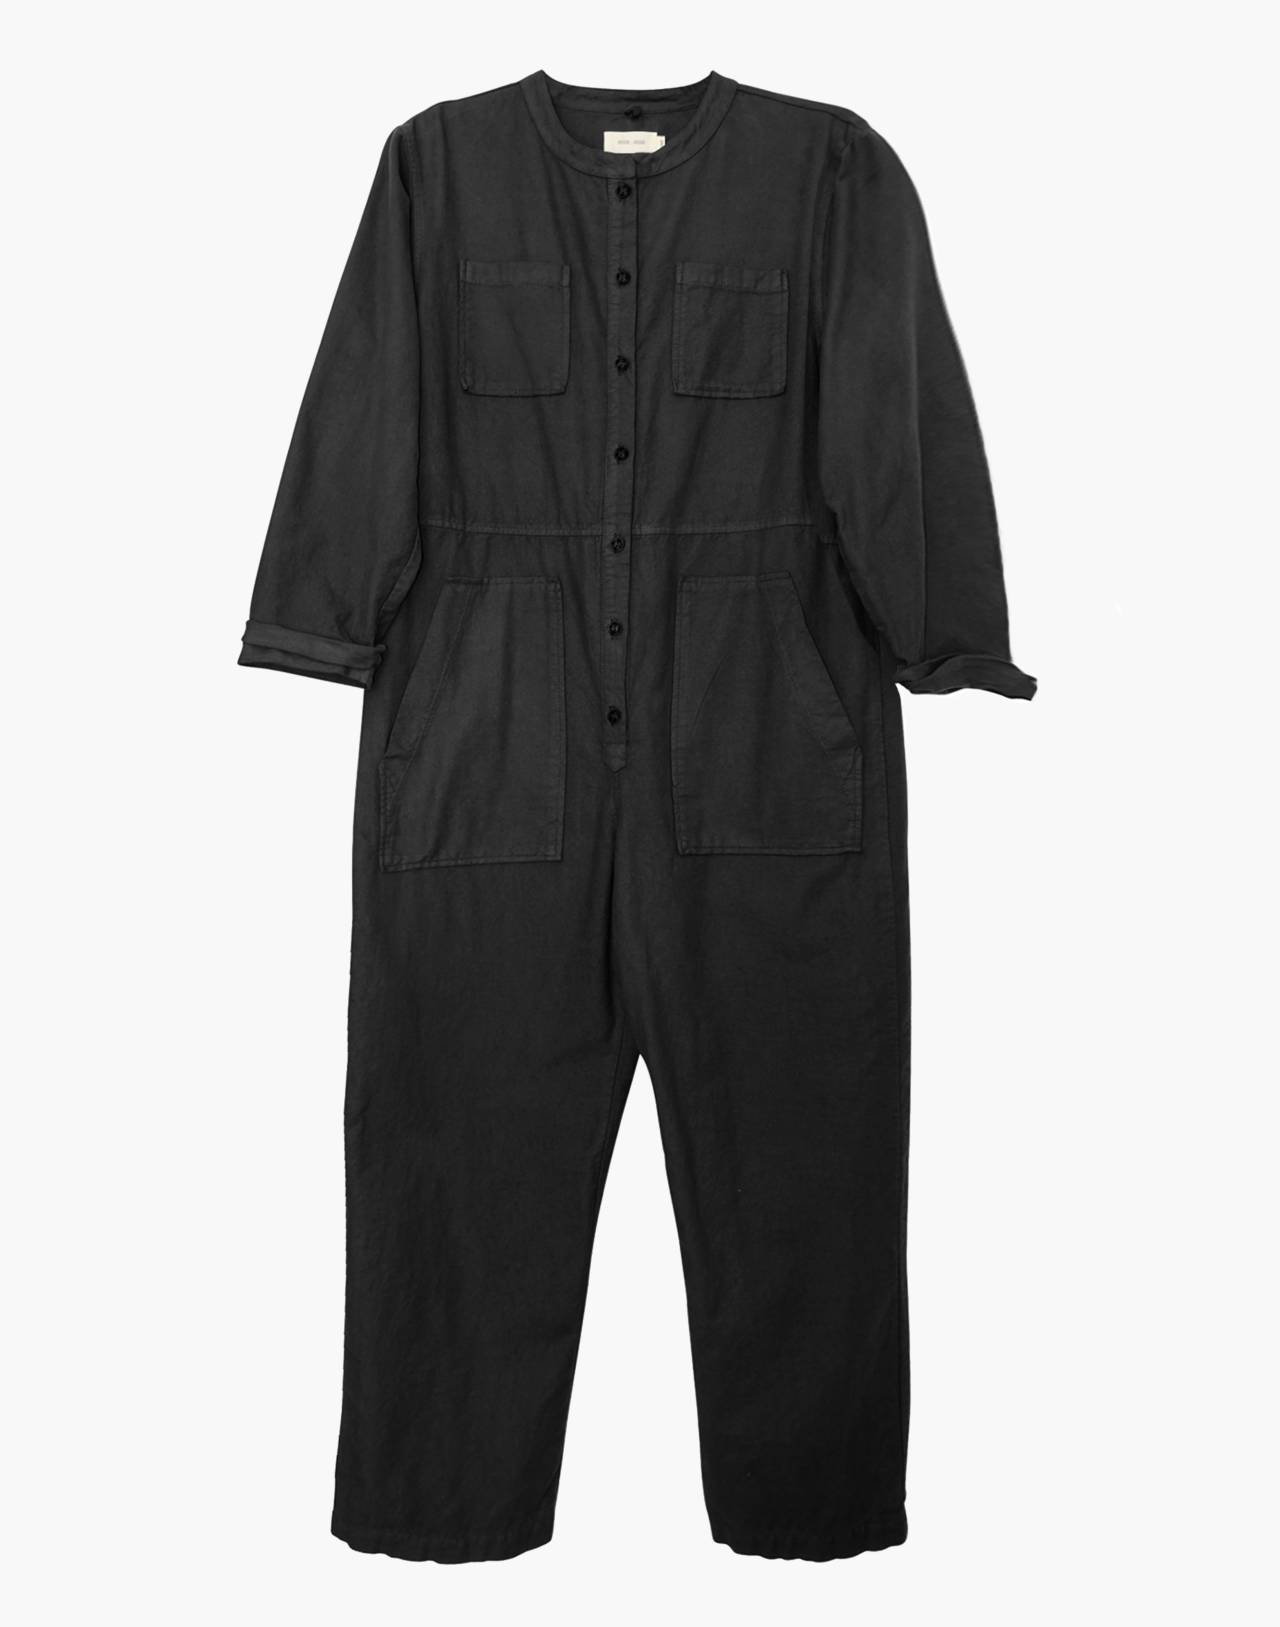 NICO NICO™ Chapman Flannel Jumpsuit in black image 1